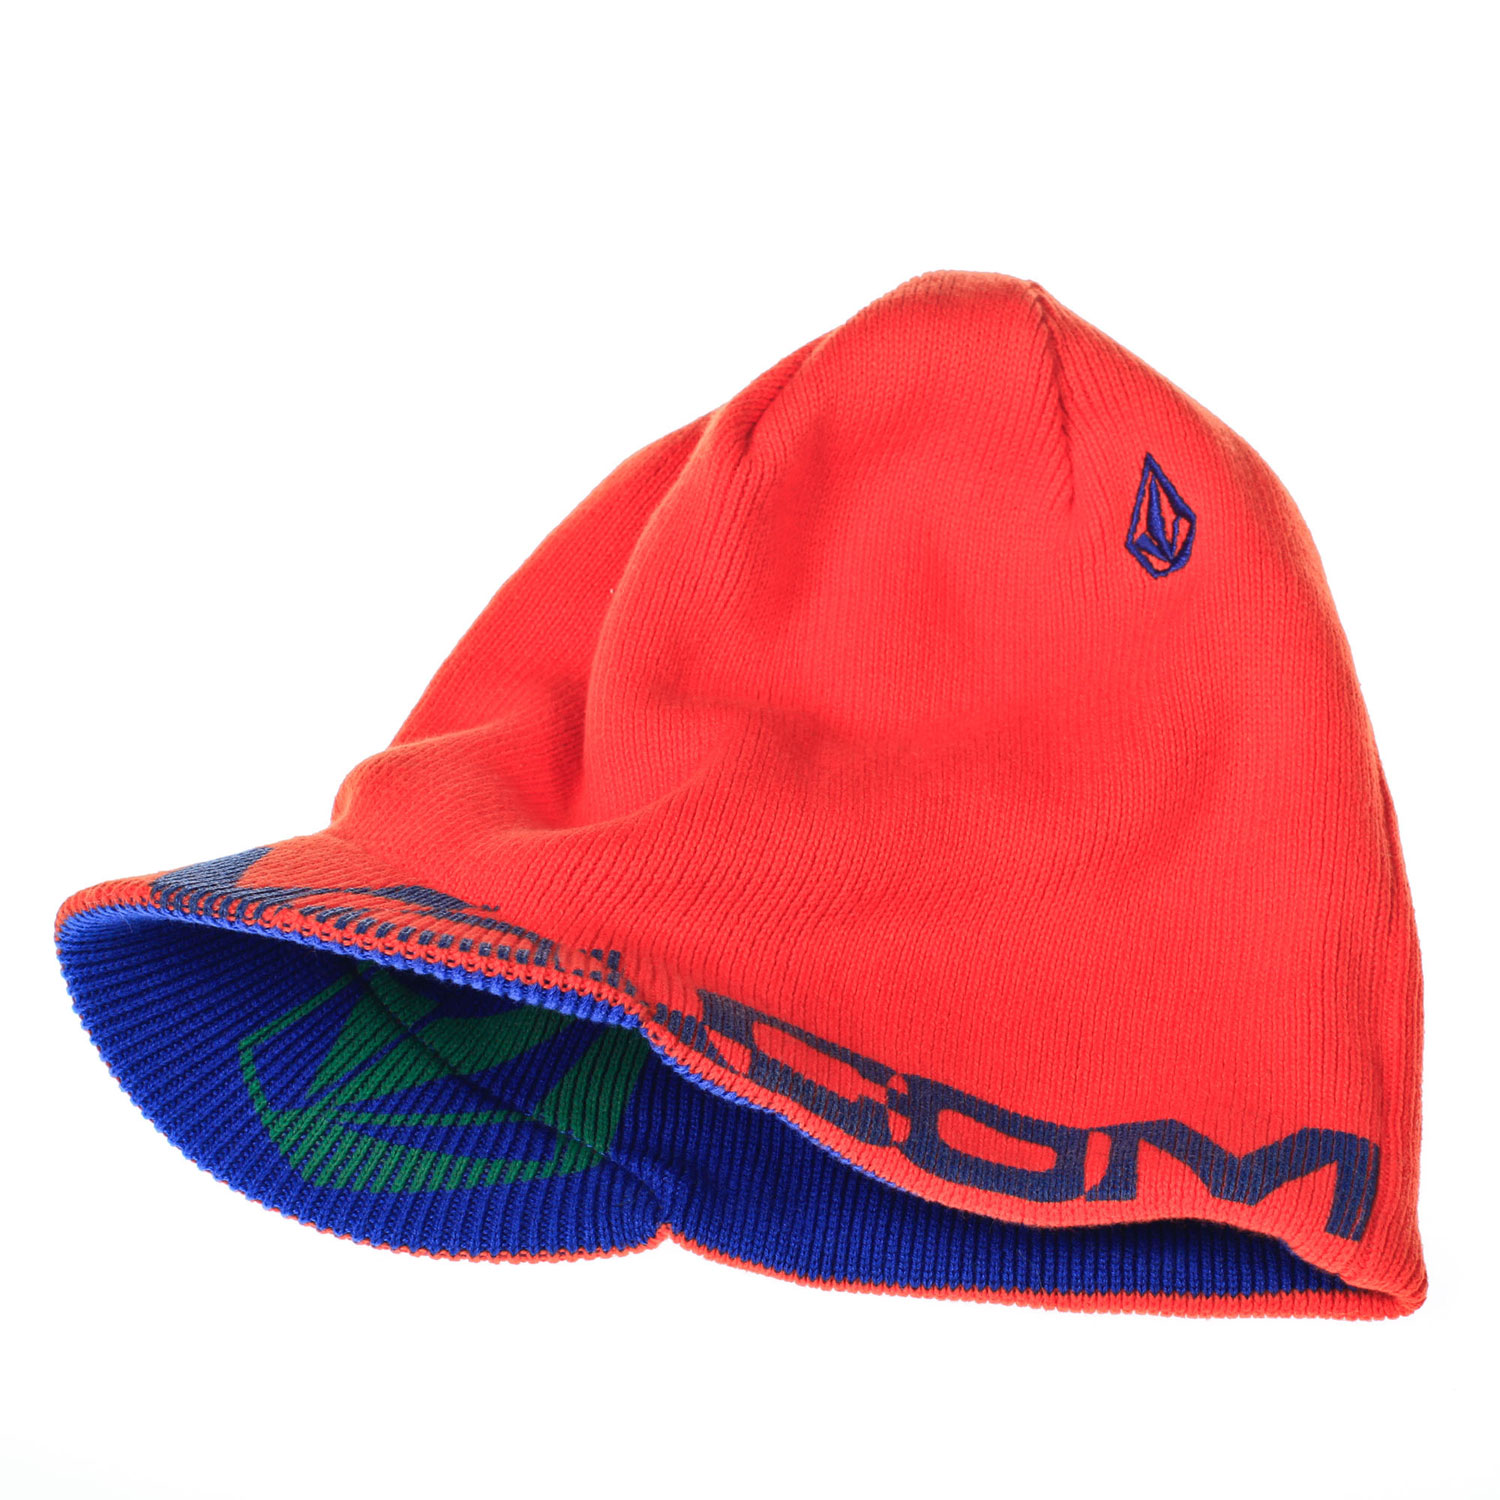 Surf Key Features of the Volcom Westgate Beanie: Machine Knit Acrylic Reversible Brim Discharge Screen Stone Embroidery Brim Fit - $20.95